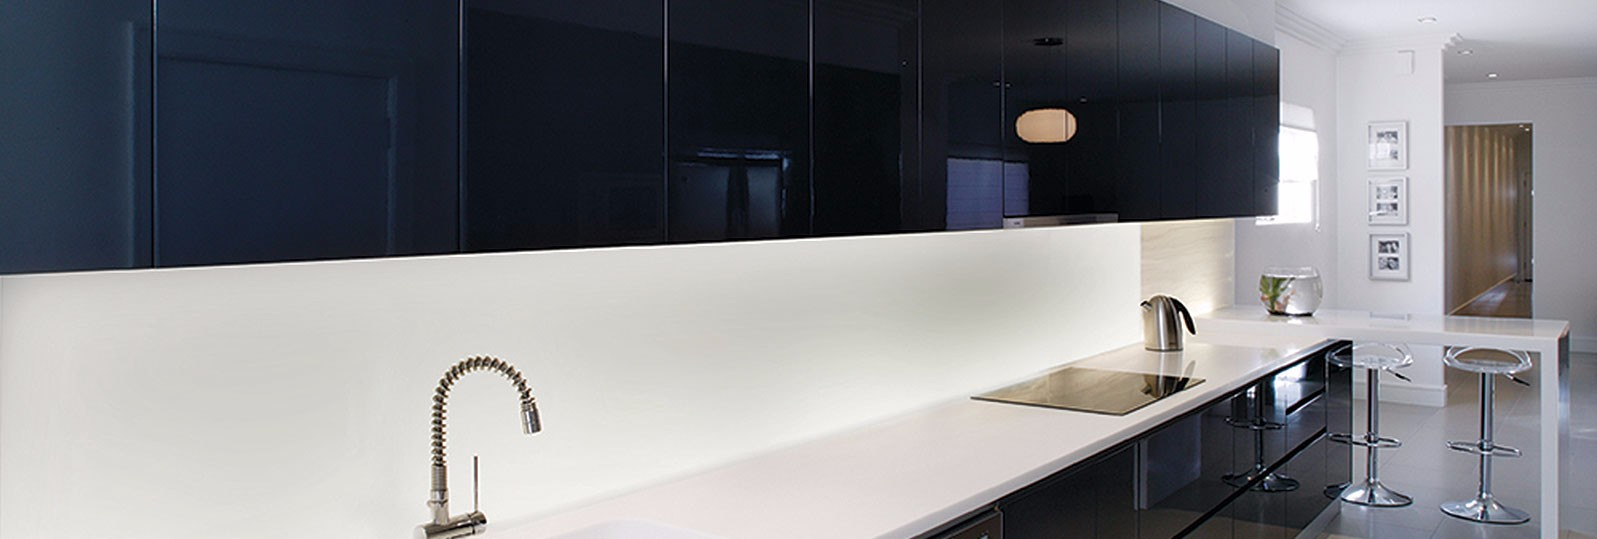 corian-black-white-kitchen